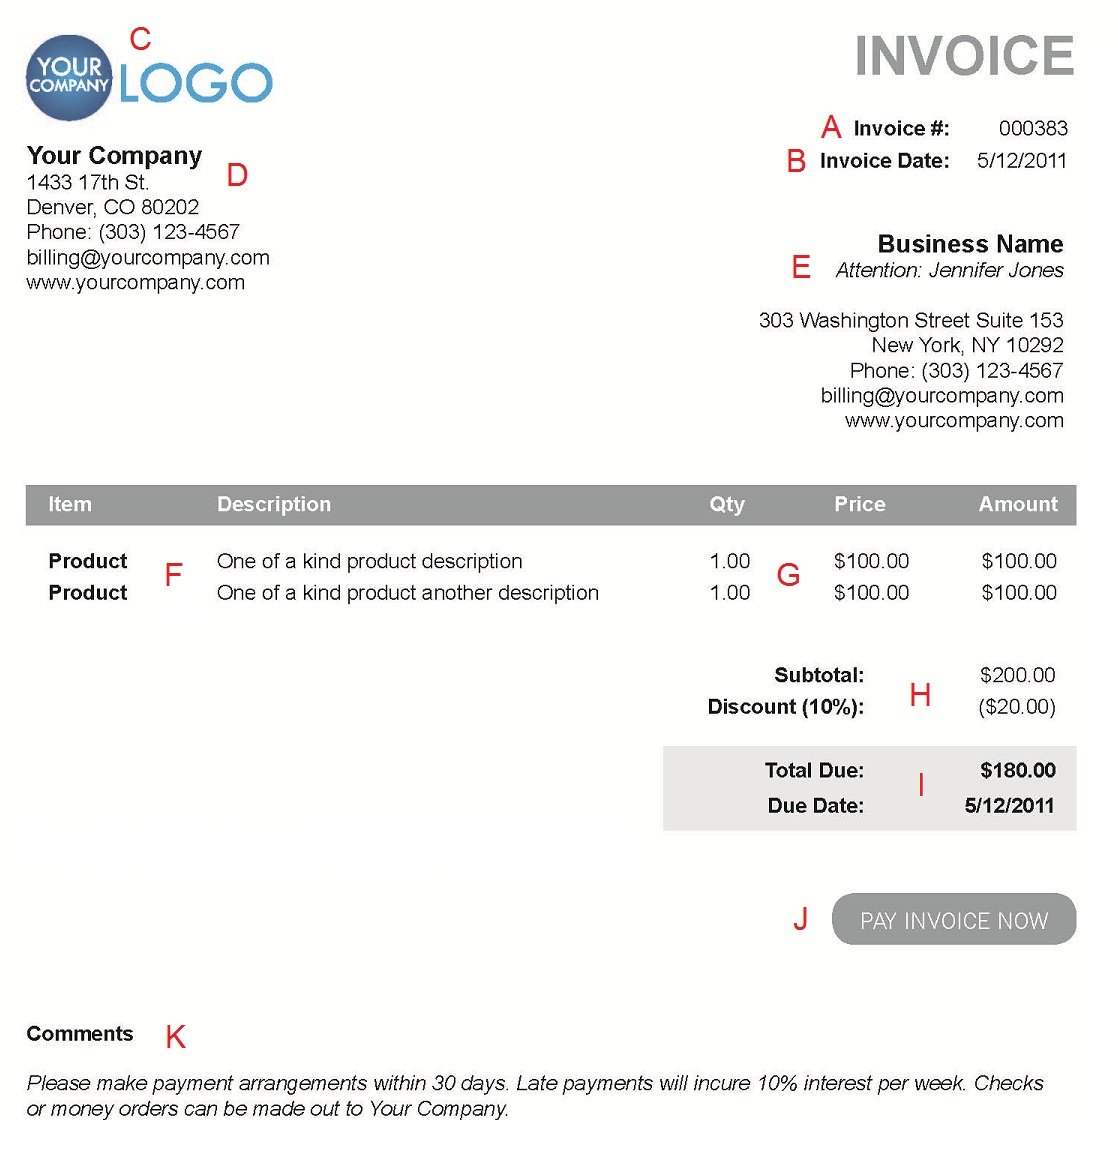 Massenargcus  Fascinating The  Different Sections Of An Electronic Payment Invoice With Handsome A  With Comely Costco Return Policy Without Receipt Also Printable Rent Receipt In Addition Read Receipts For Android And Email Read Receipt As Well As Walmart Receipt Generator Additionally Gmail Return Receipt From Paysimplecom With Massenargcus  Handsome The  Different Sections Of An Electronic Payment Invoice With Comely A  And Fascinating Costco Return Policy Without Receipt Also Printable Rent Receipt In Addition Read Receipts For Android From Paysimplecom